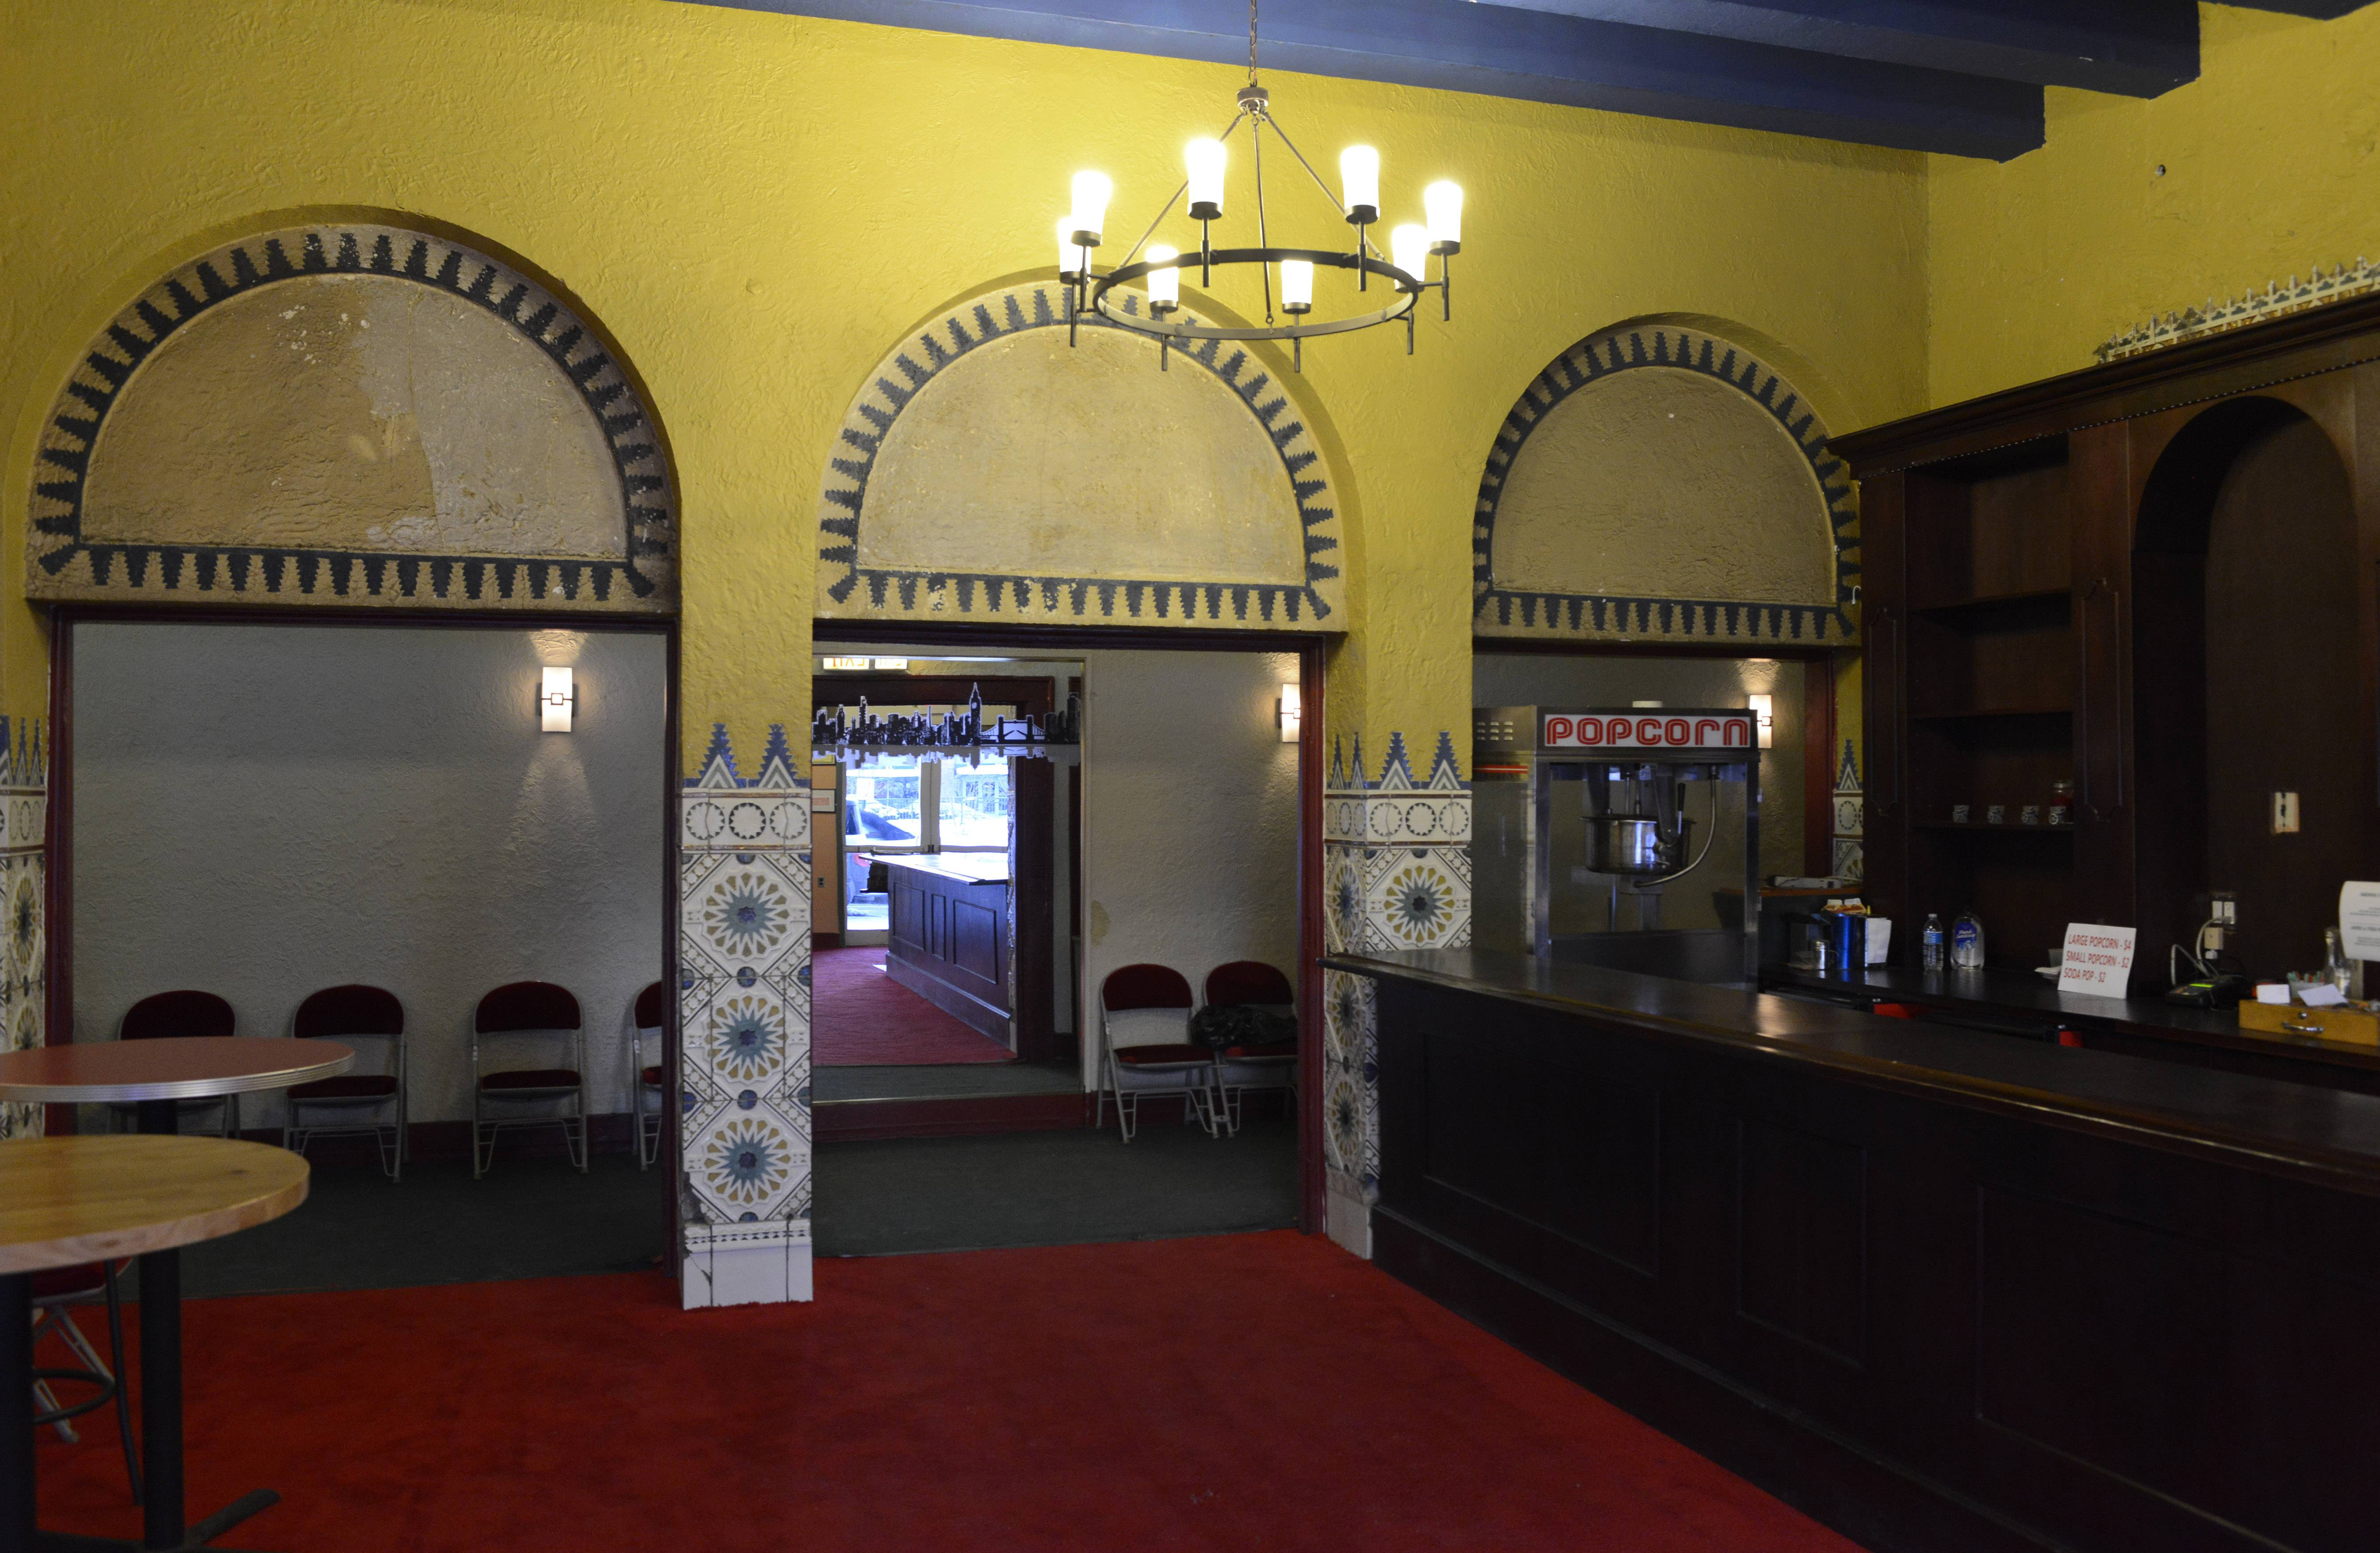 This is the lobby of the shuttered Des Plaines Theatre.